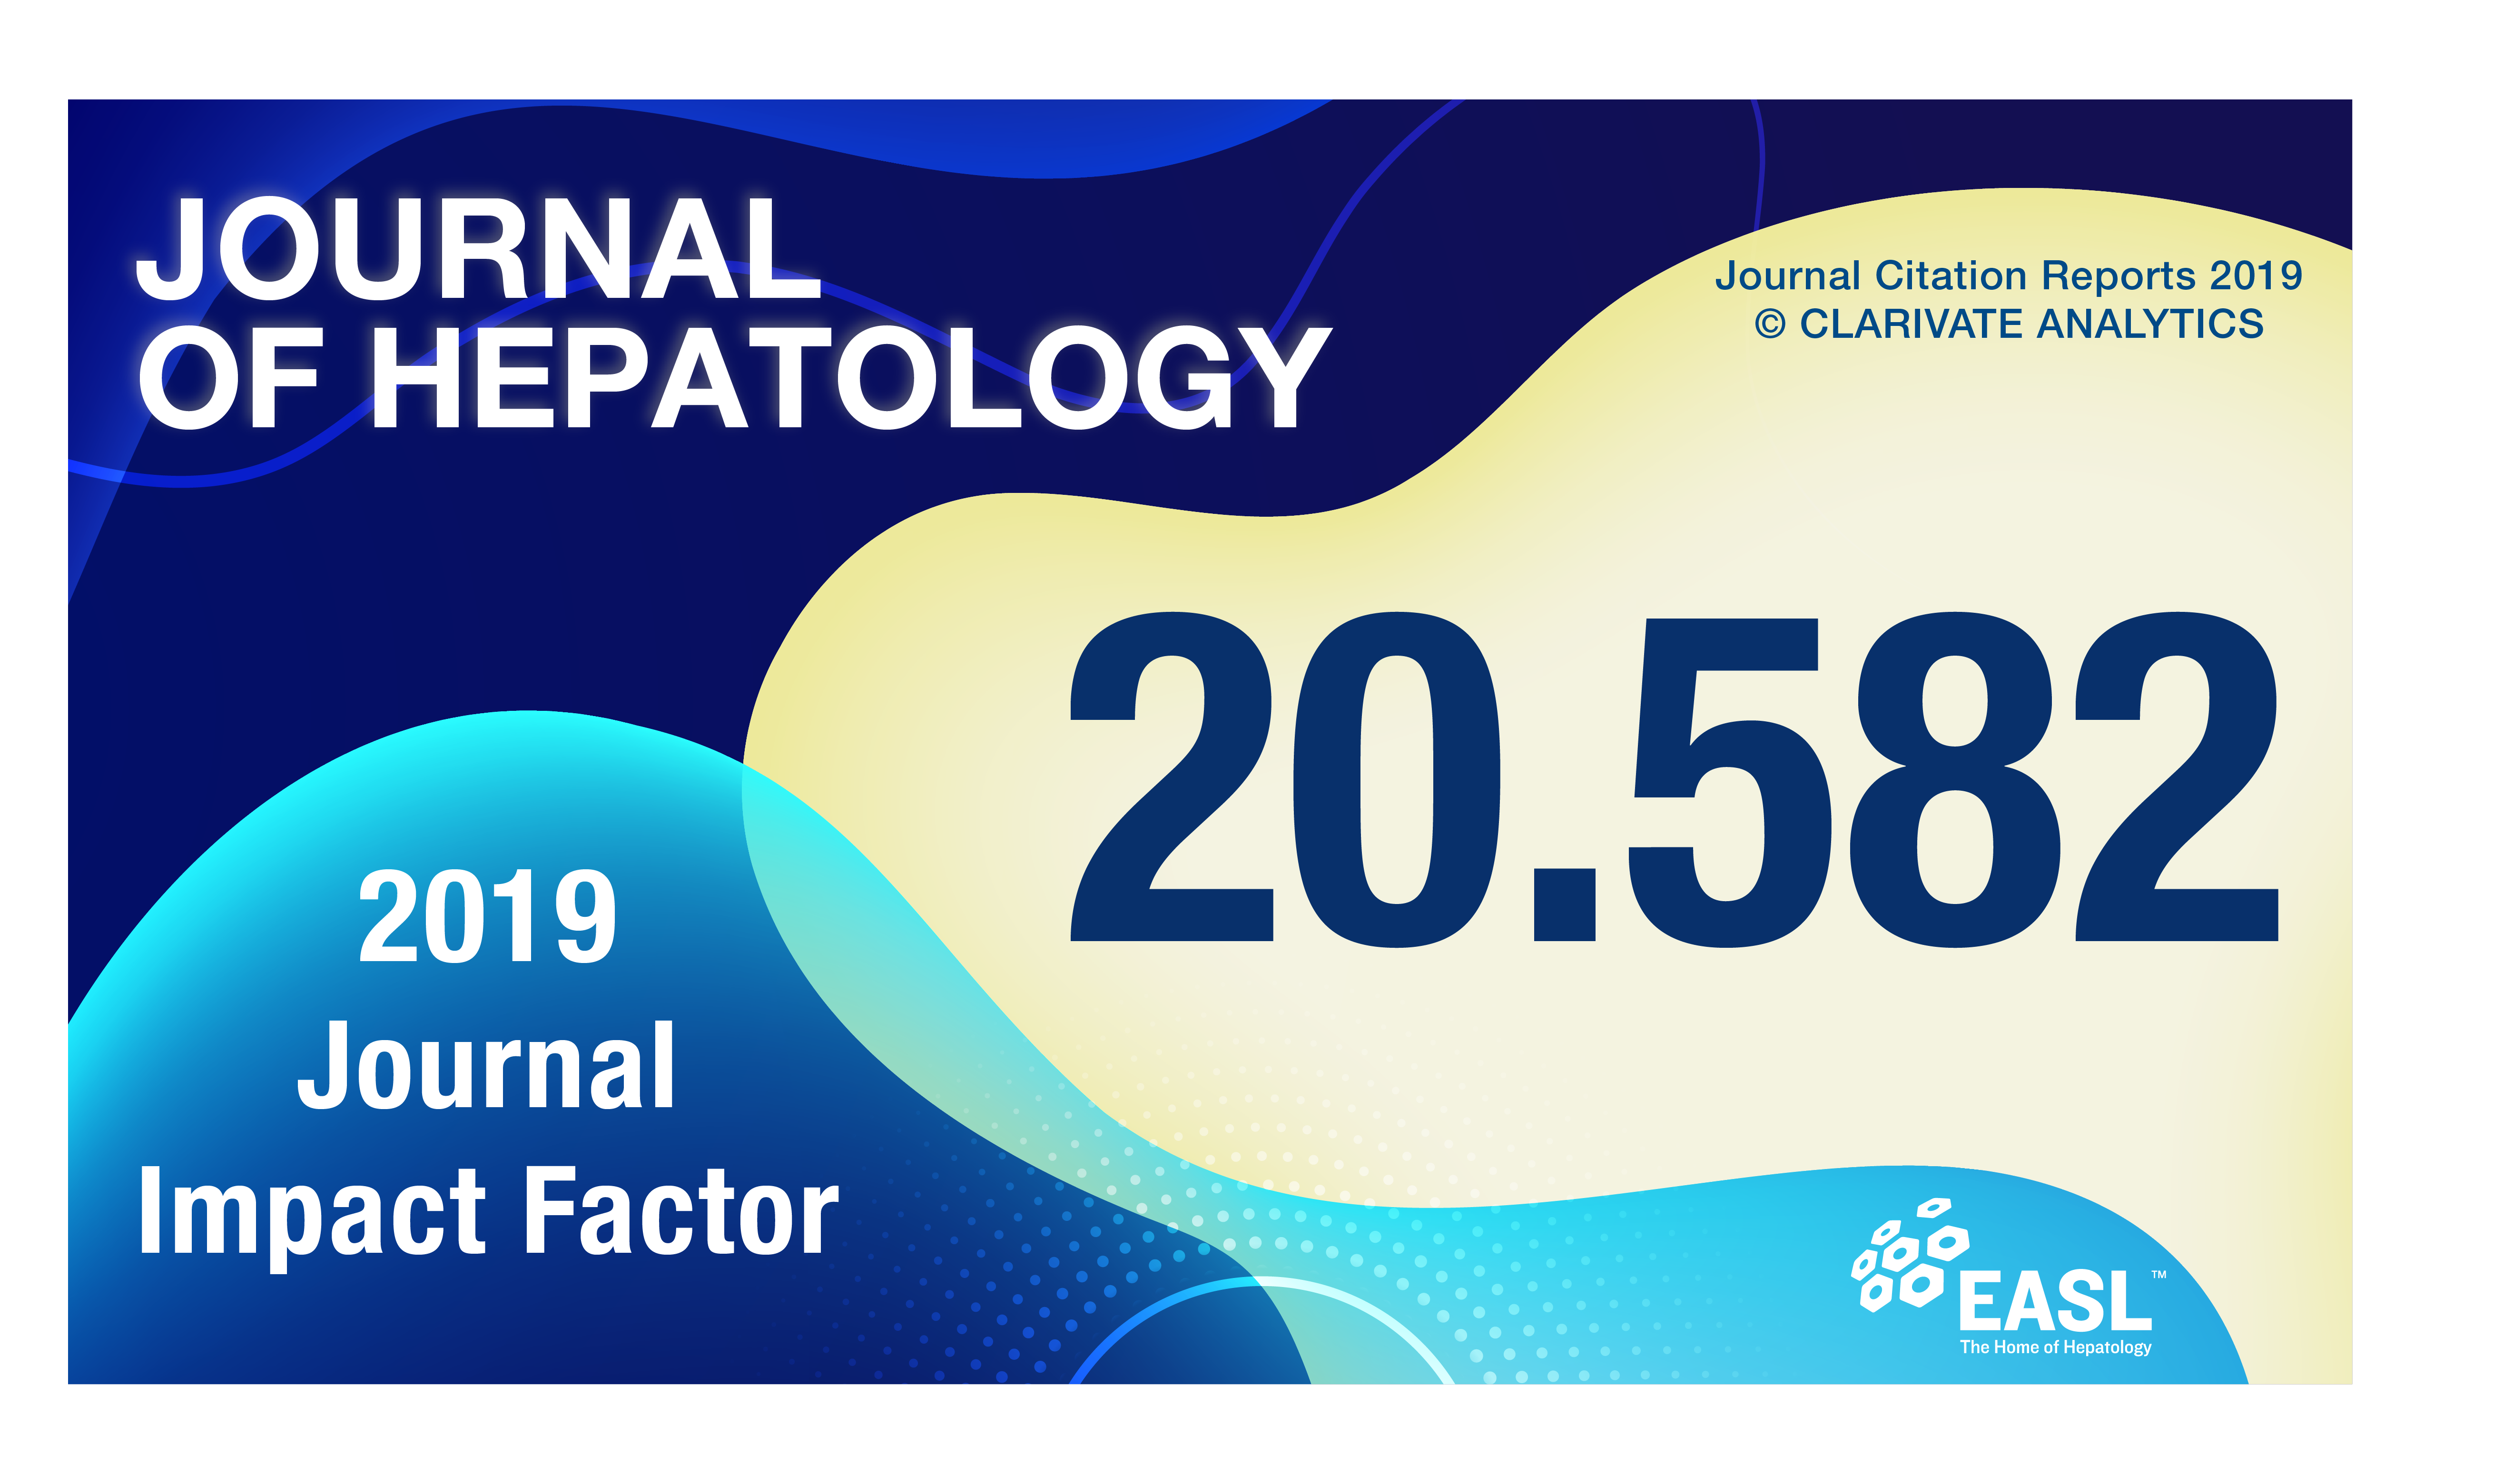 Journal Of Hepatology Ranking Climbs, Remaining Best Journal On Liver Disease